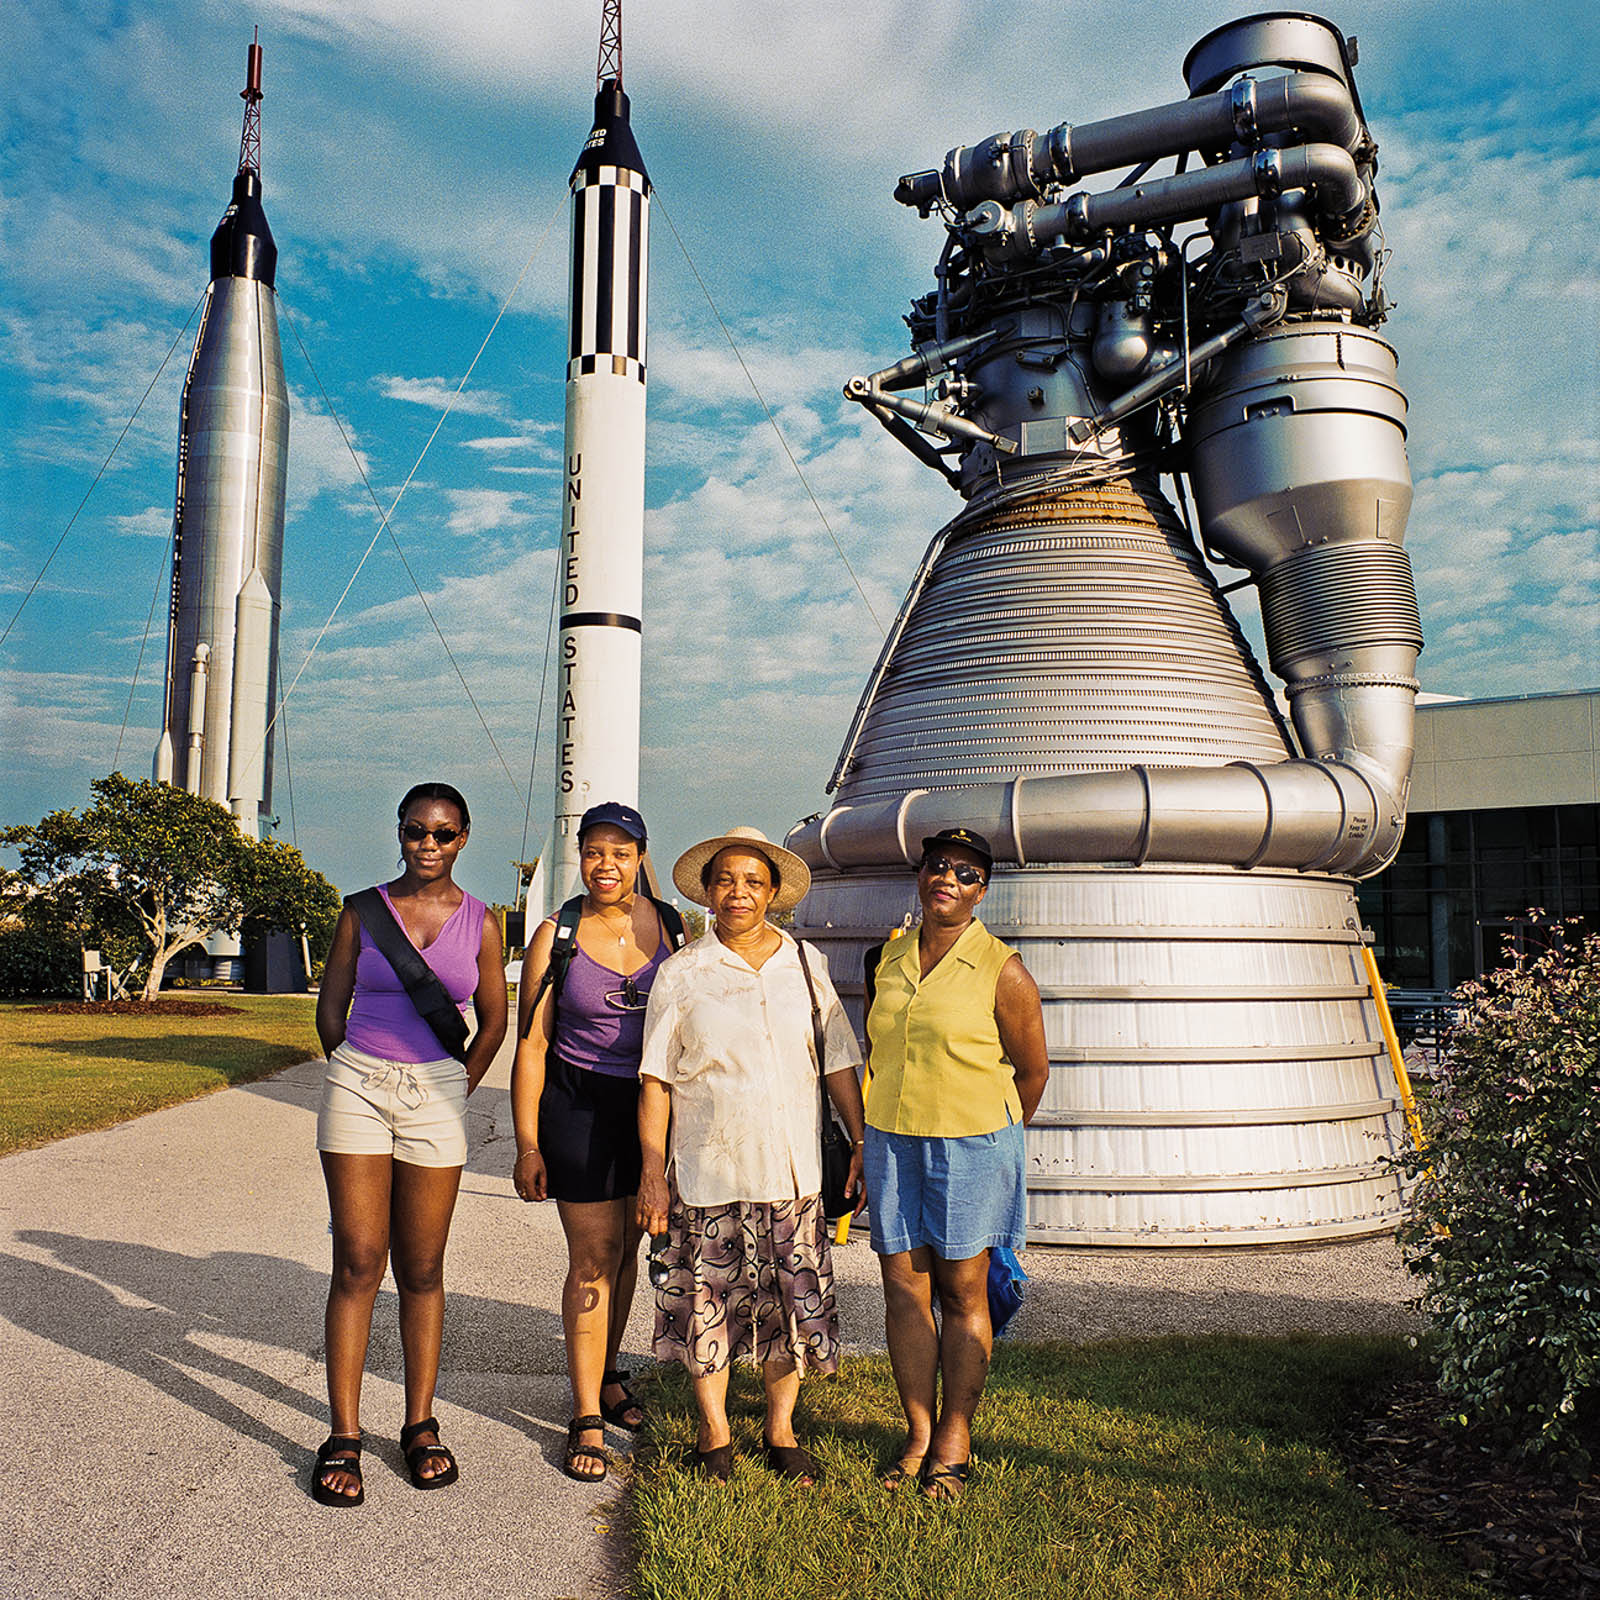 Family at Kennedy Space Center, Cape Canaveral, Florida 2000